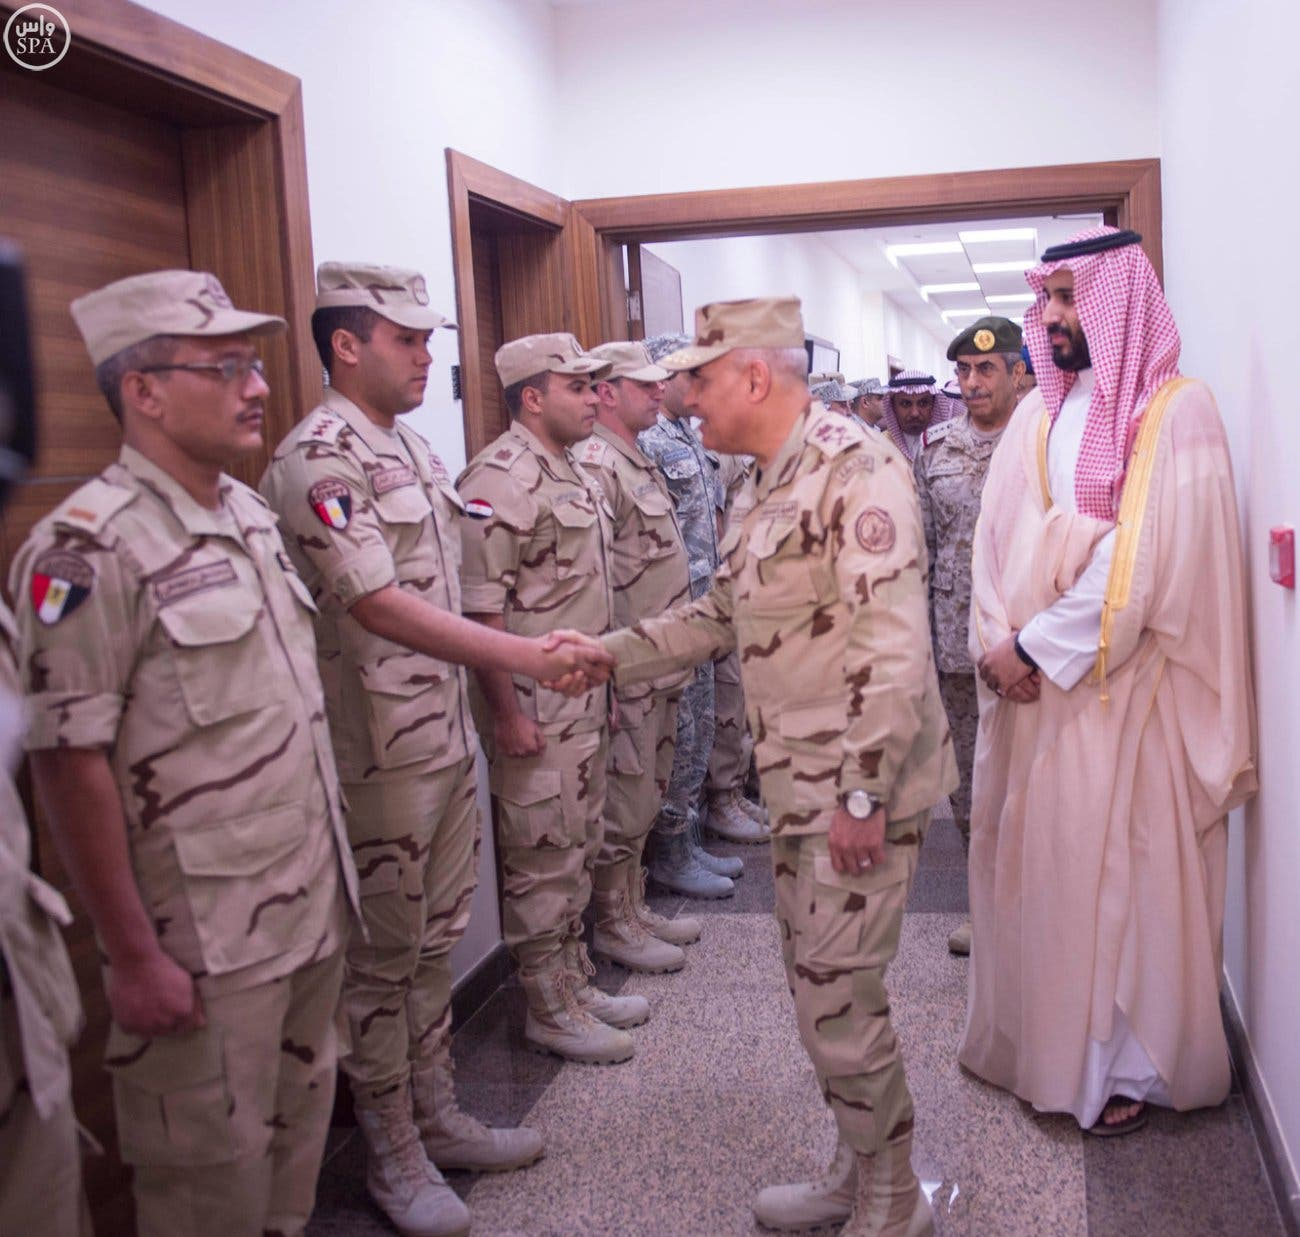 Egypt defense minister in Riyadh to discuss operation in Yemen (SPA)